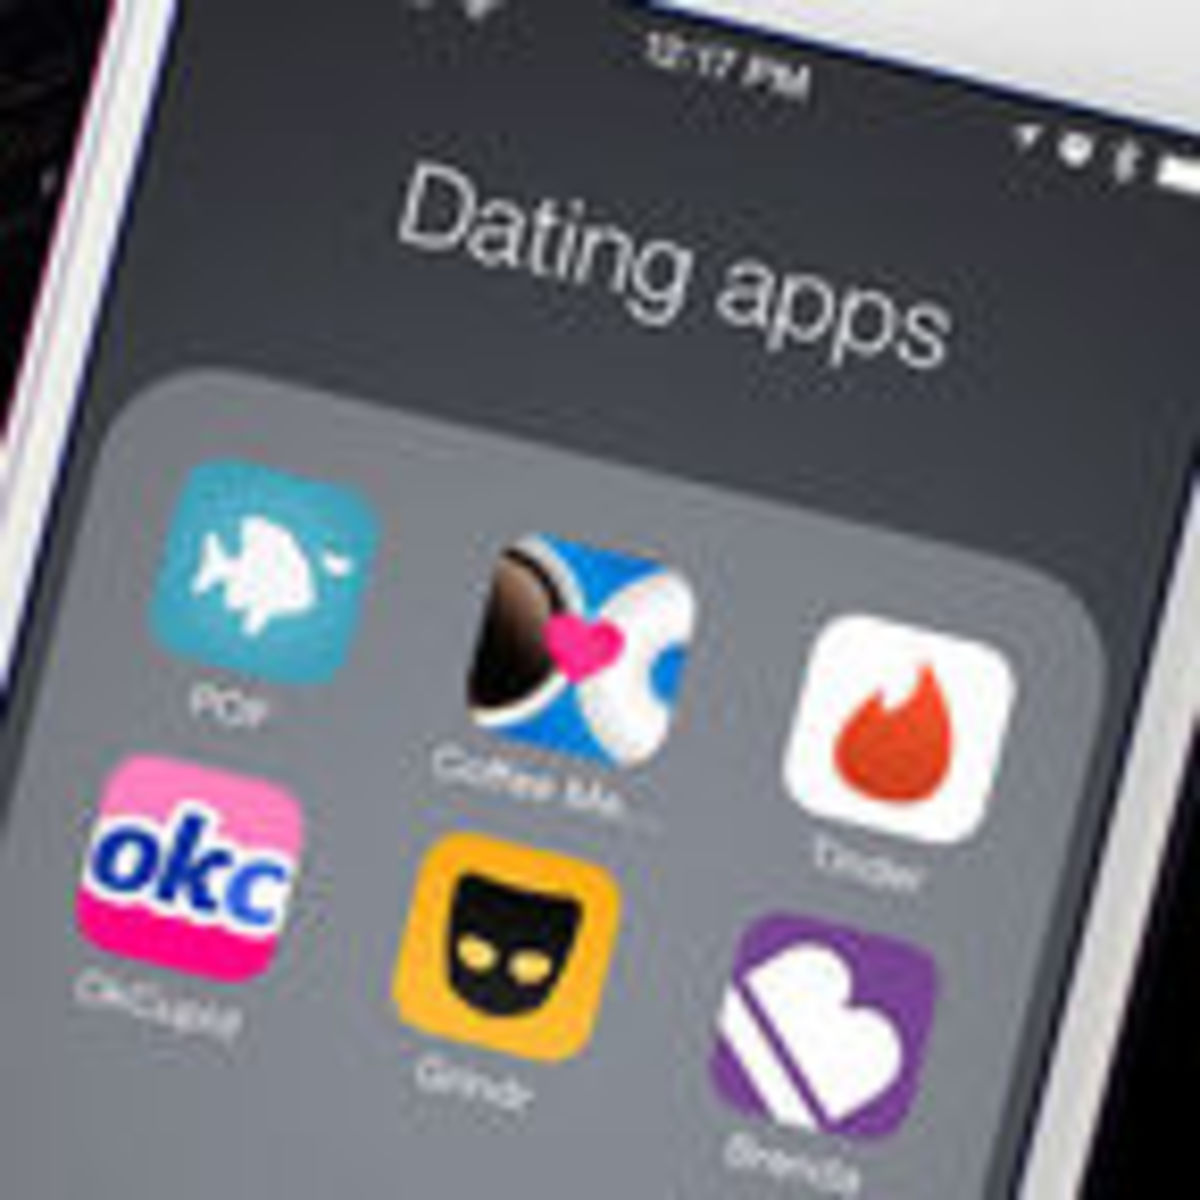 Dating apps move past their shaky start - The Irish Times